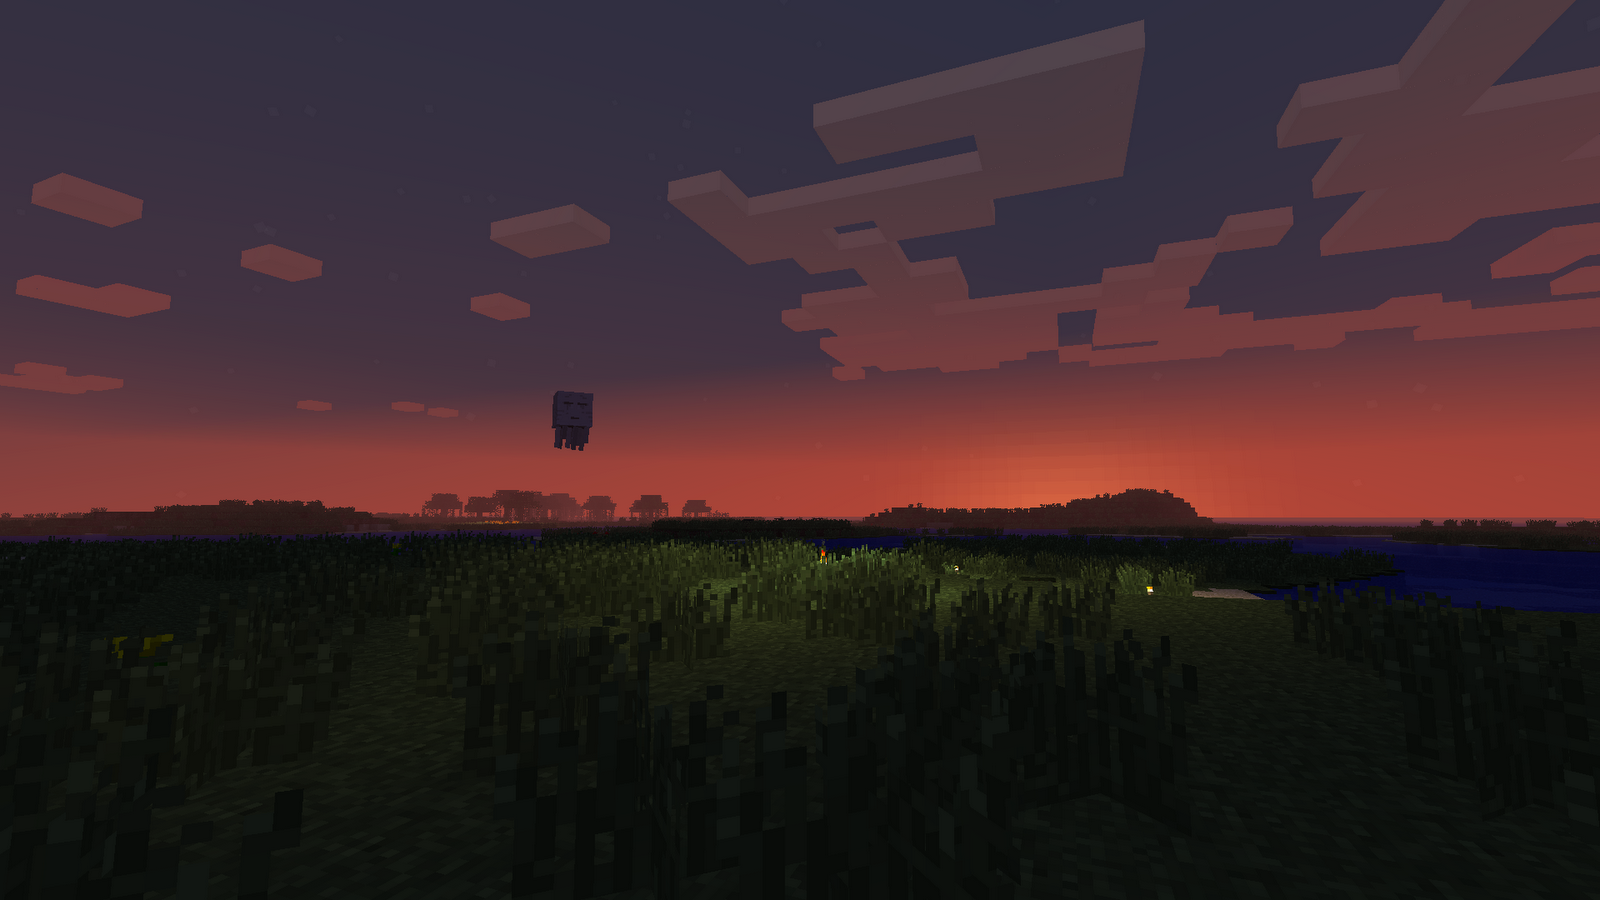 D74g0ns Minecraft Pixel Sun Ghast Sunset Wallpaper